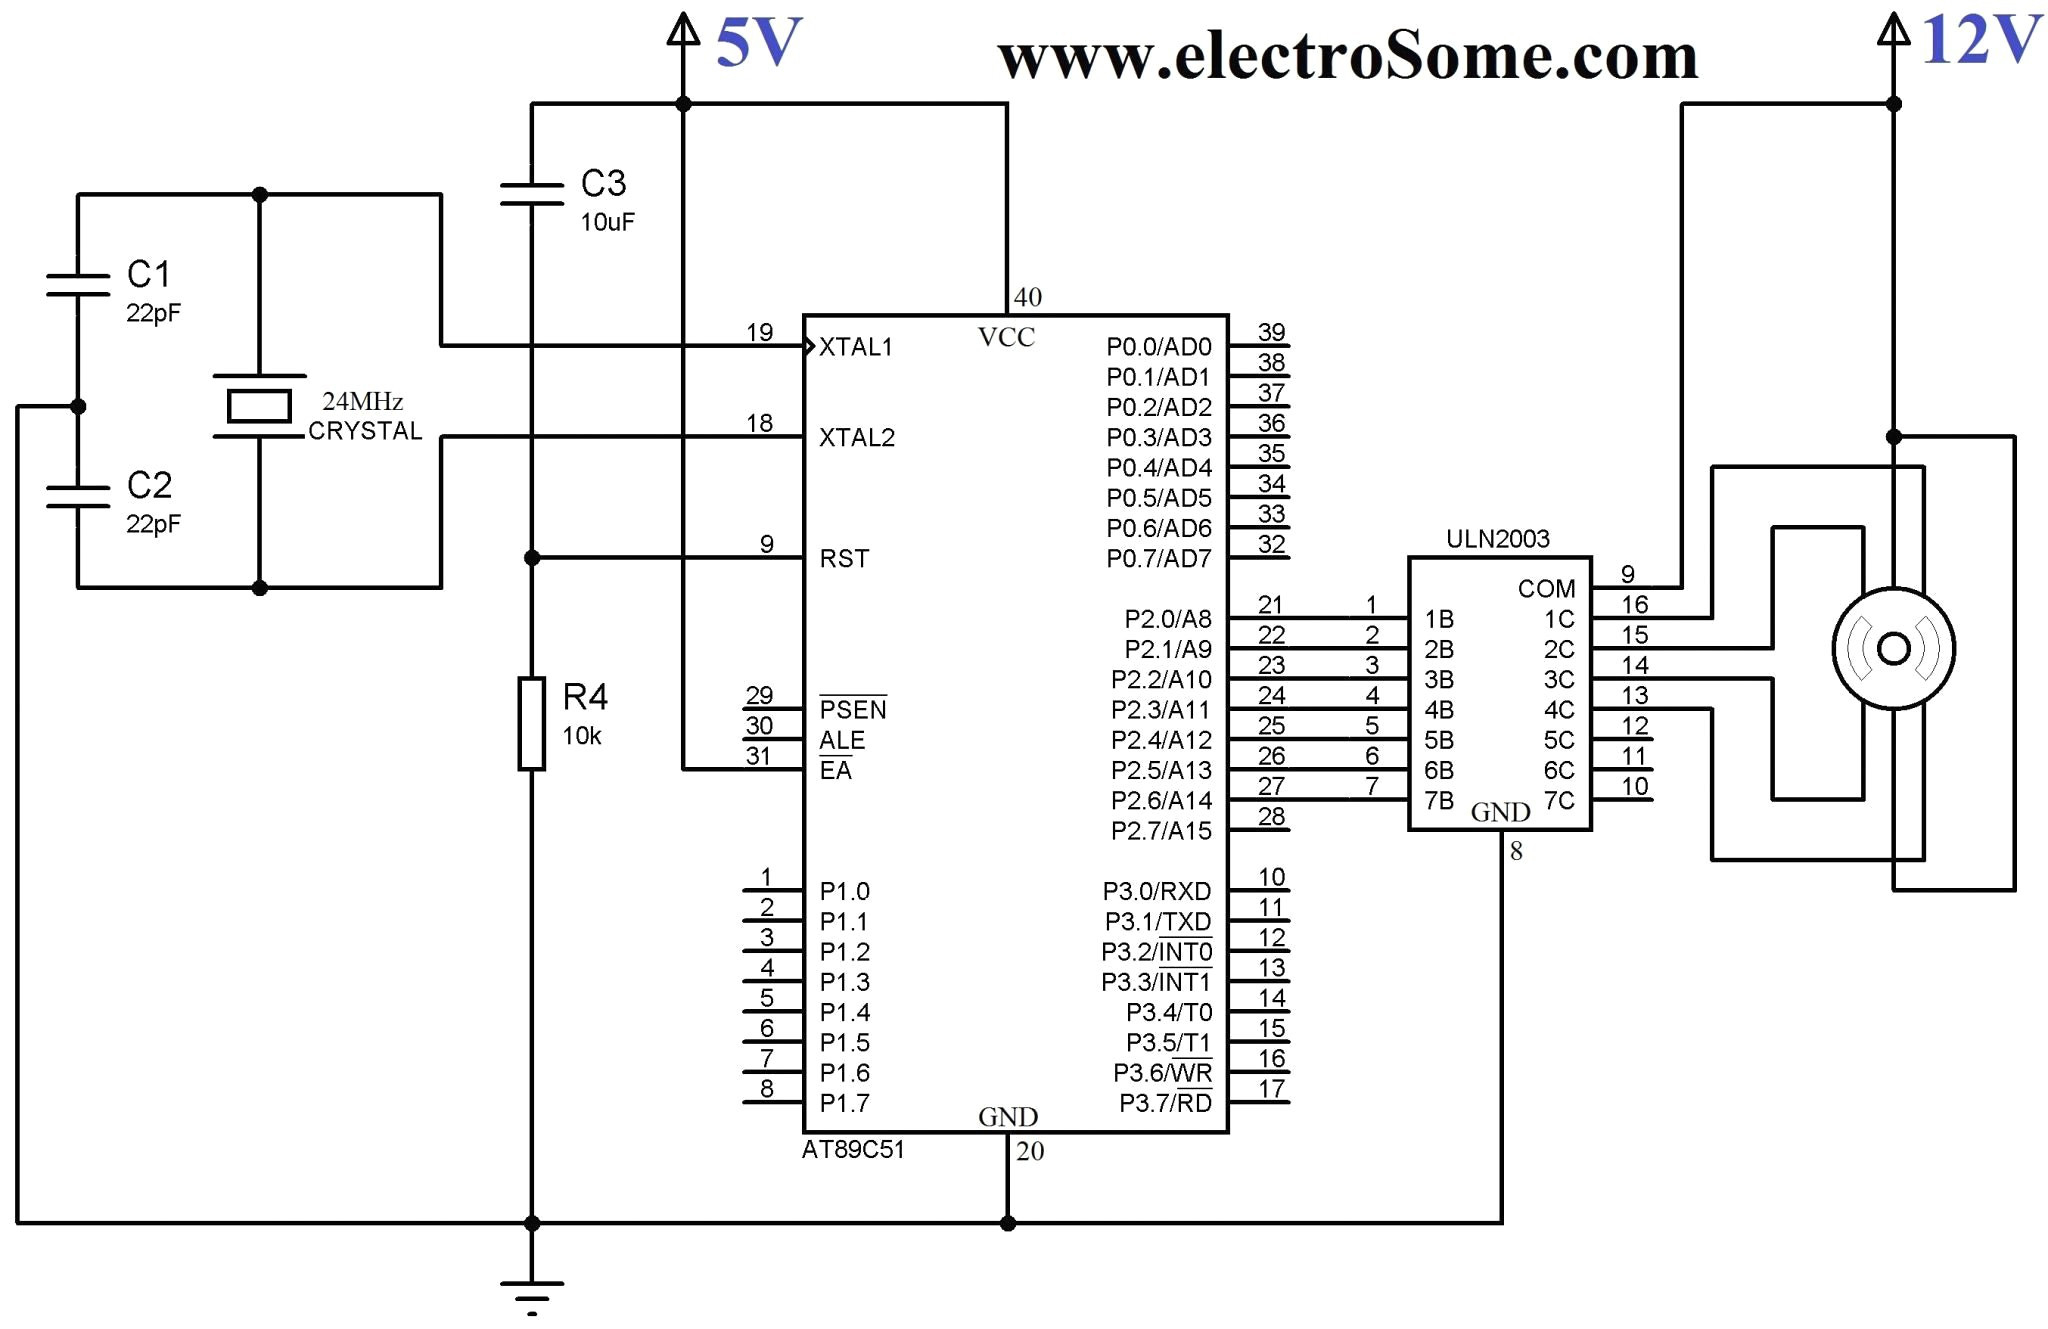 240 volt photocell wiring diagram Collection-Wiring Diagram cell New Cell Wiring Diagram New Lighting Contactor With Cell And 9-j